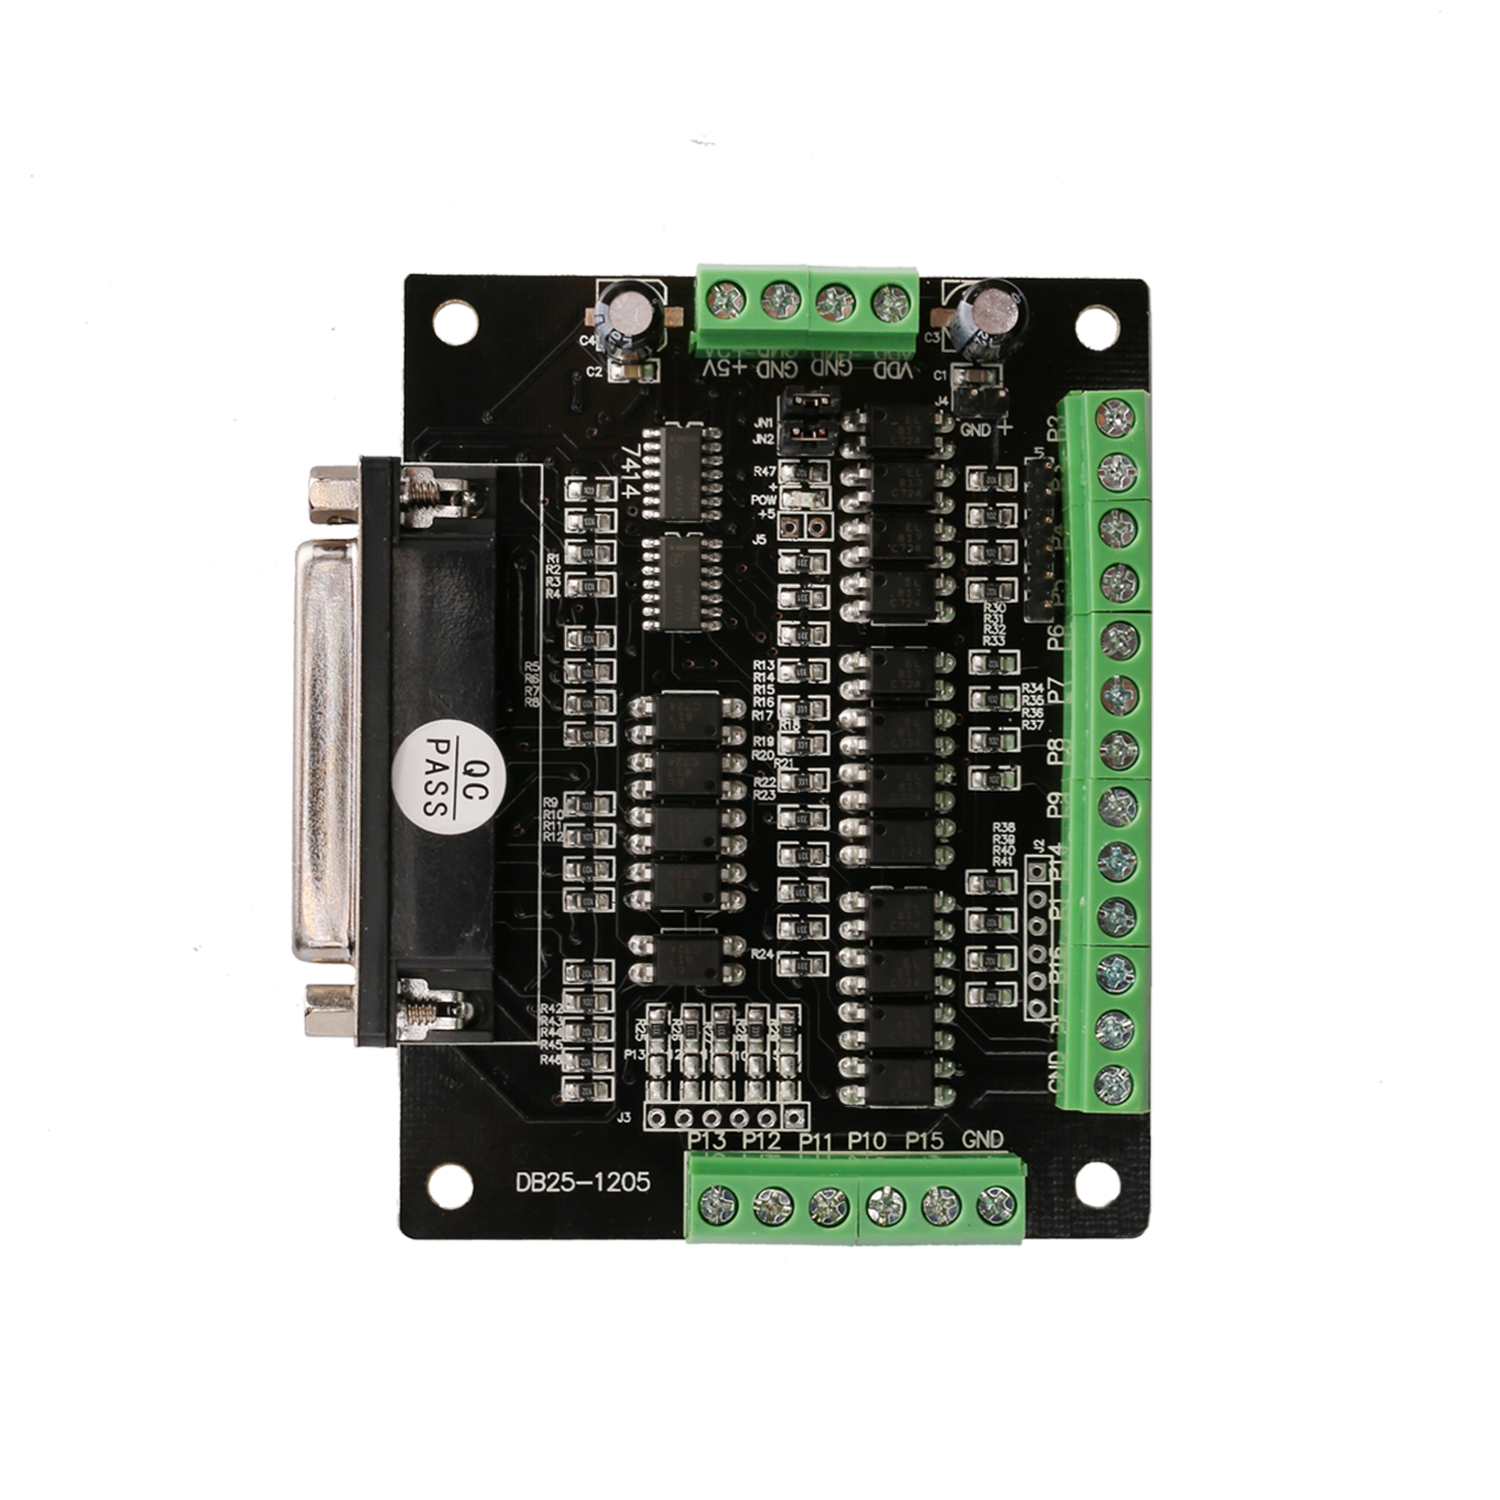 4 Axis Stepper motor driver Peak 4.2A 128 micsteps - China Changzhou  Axis Dm A Wiring Diagram Db on voip wiring-diagram, usb wiring-diagram, rs232 wiring-diagram, rca wiring-diagram, dsl wiring-diagram, cat 6 rj45 wiring-diagram, rj12 wiring-diagram, tip ring sleeve wiring-diagram, rj11 wiring-diagram, xlr wiring-diagram, vga wiring-diagram, norstar wiring-diagram, hdmi wiring-diagram, rs-422 wiring-diagram, serial rj45 wiring-diagram,